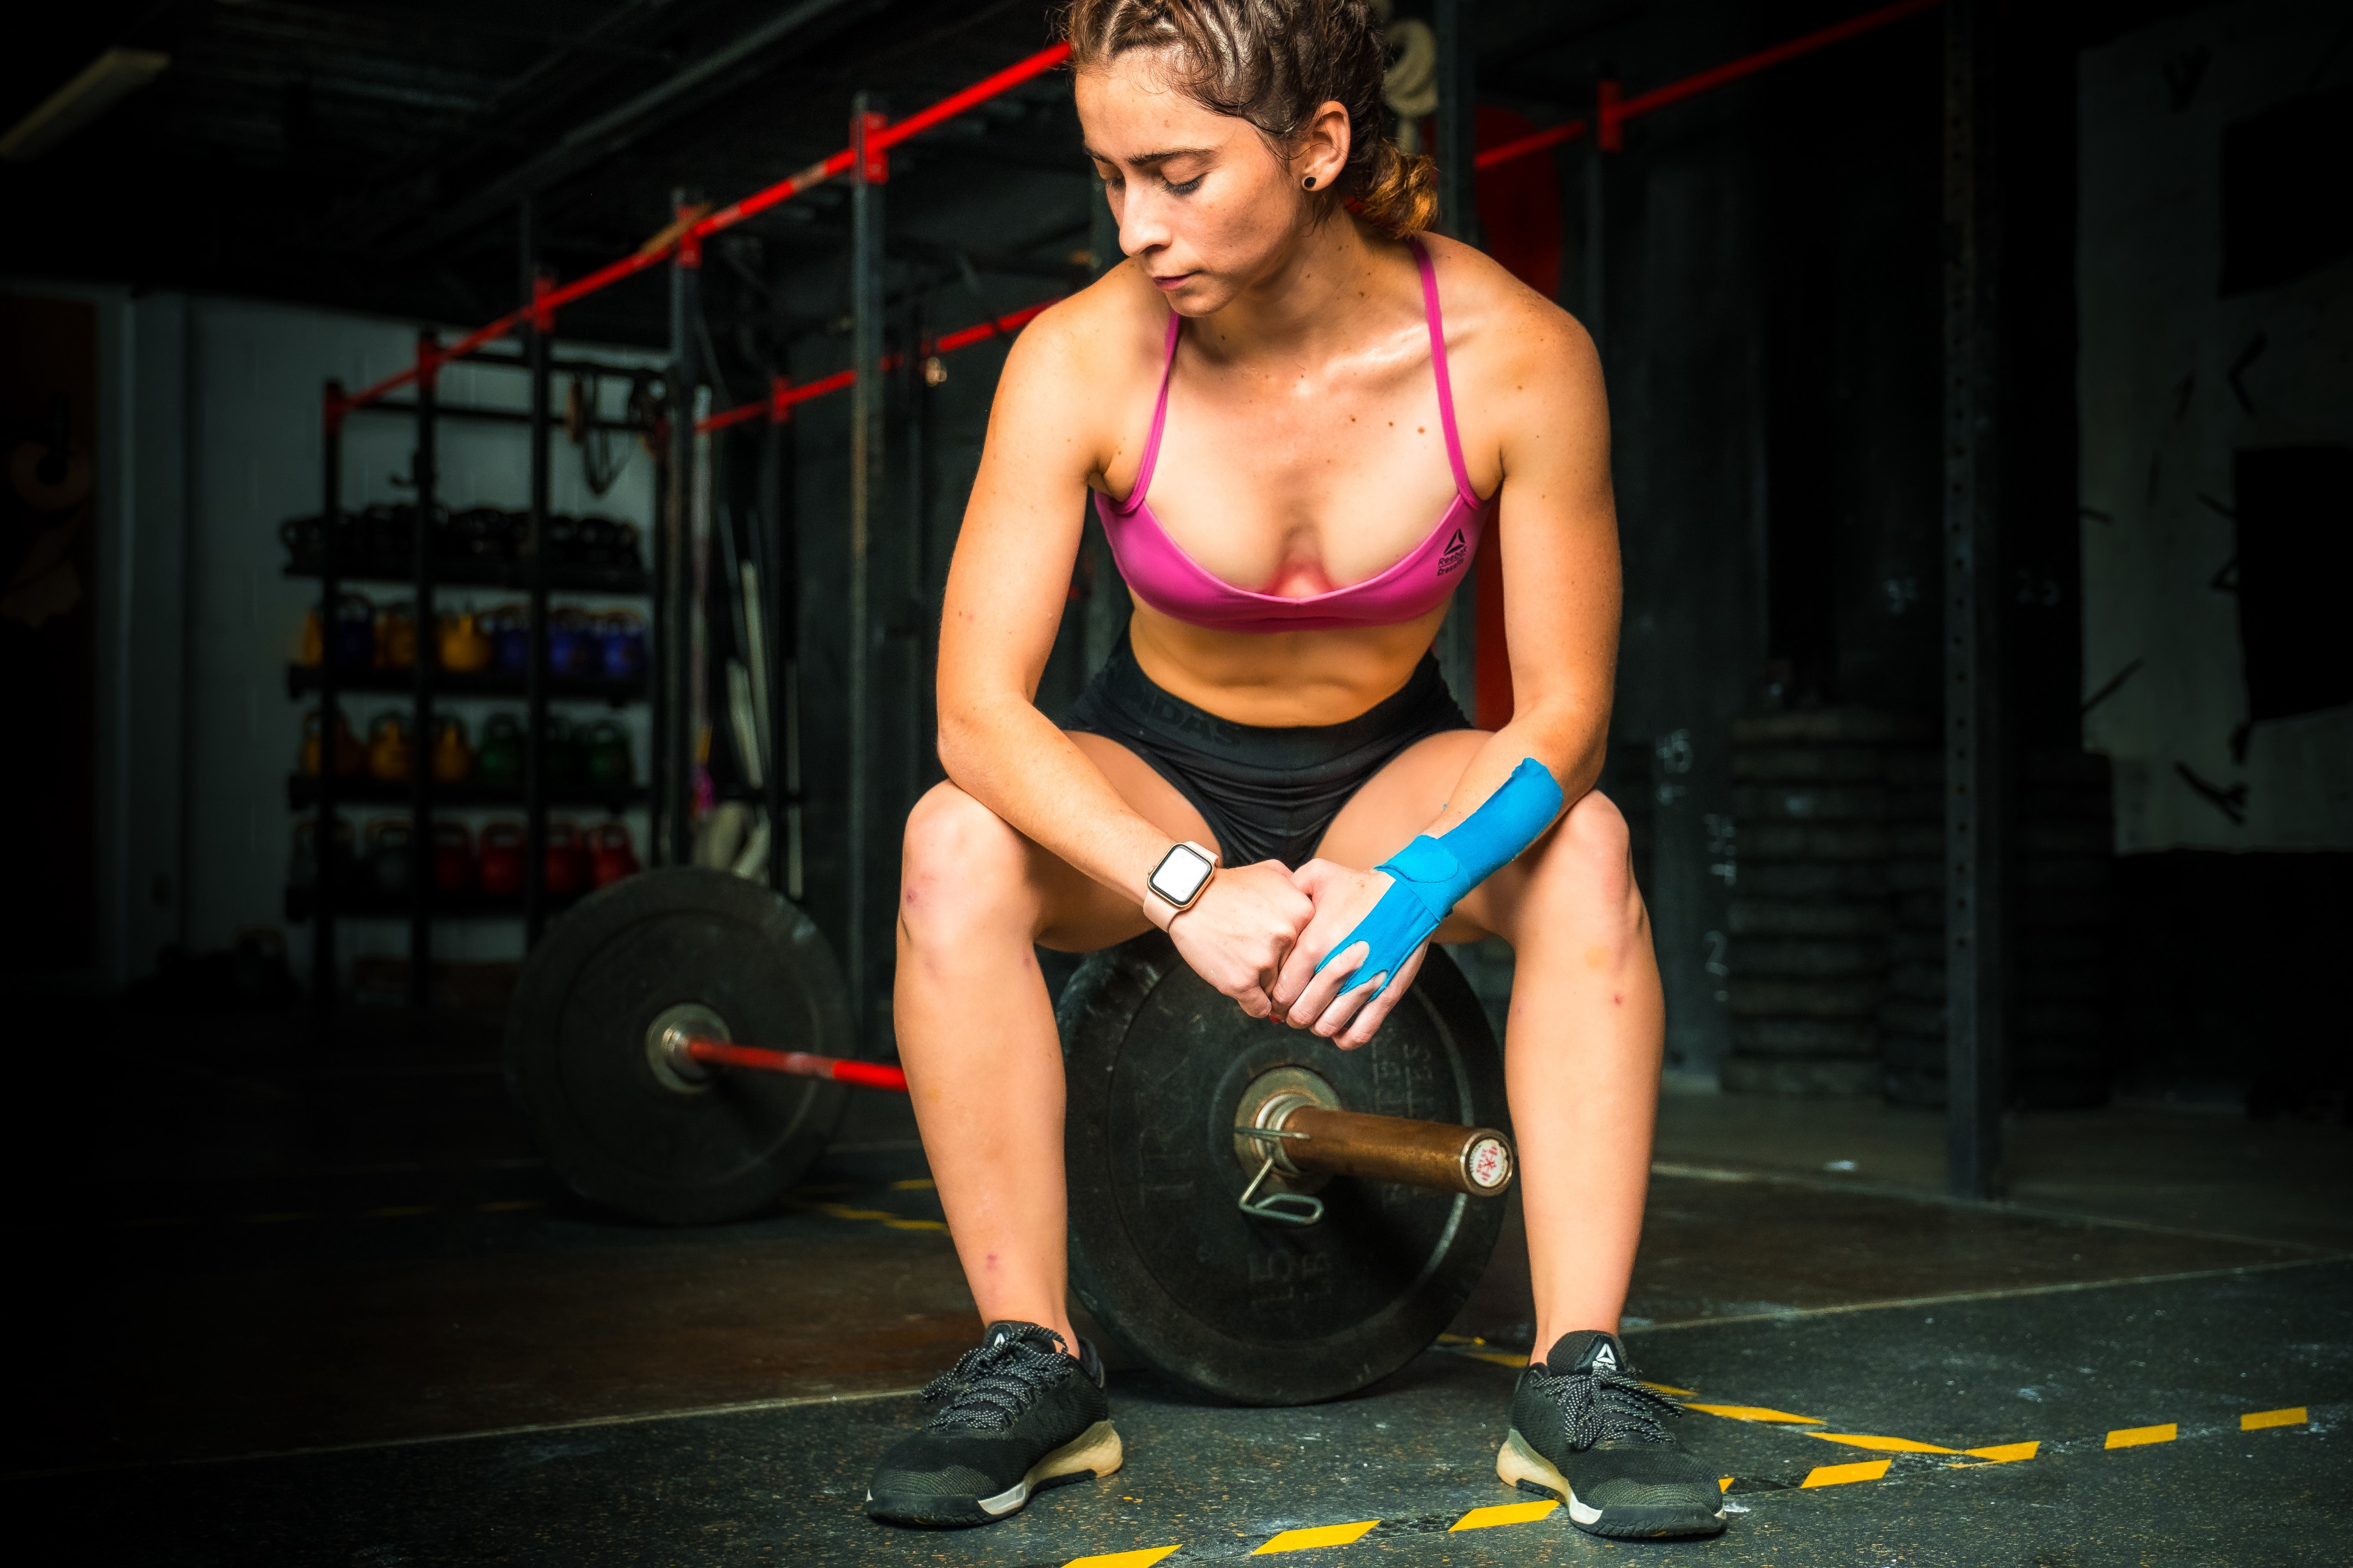 Woman sitting in the gym on a heavy bar. She is wearing a pink bralette and black shorts. She has blue kinesiology tape on her left wrist, and a watch on her right. She is wearing black tennis shoes and has her hair pulled back.